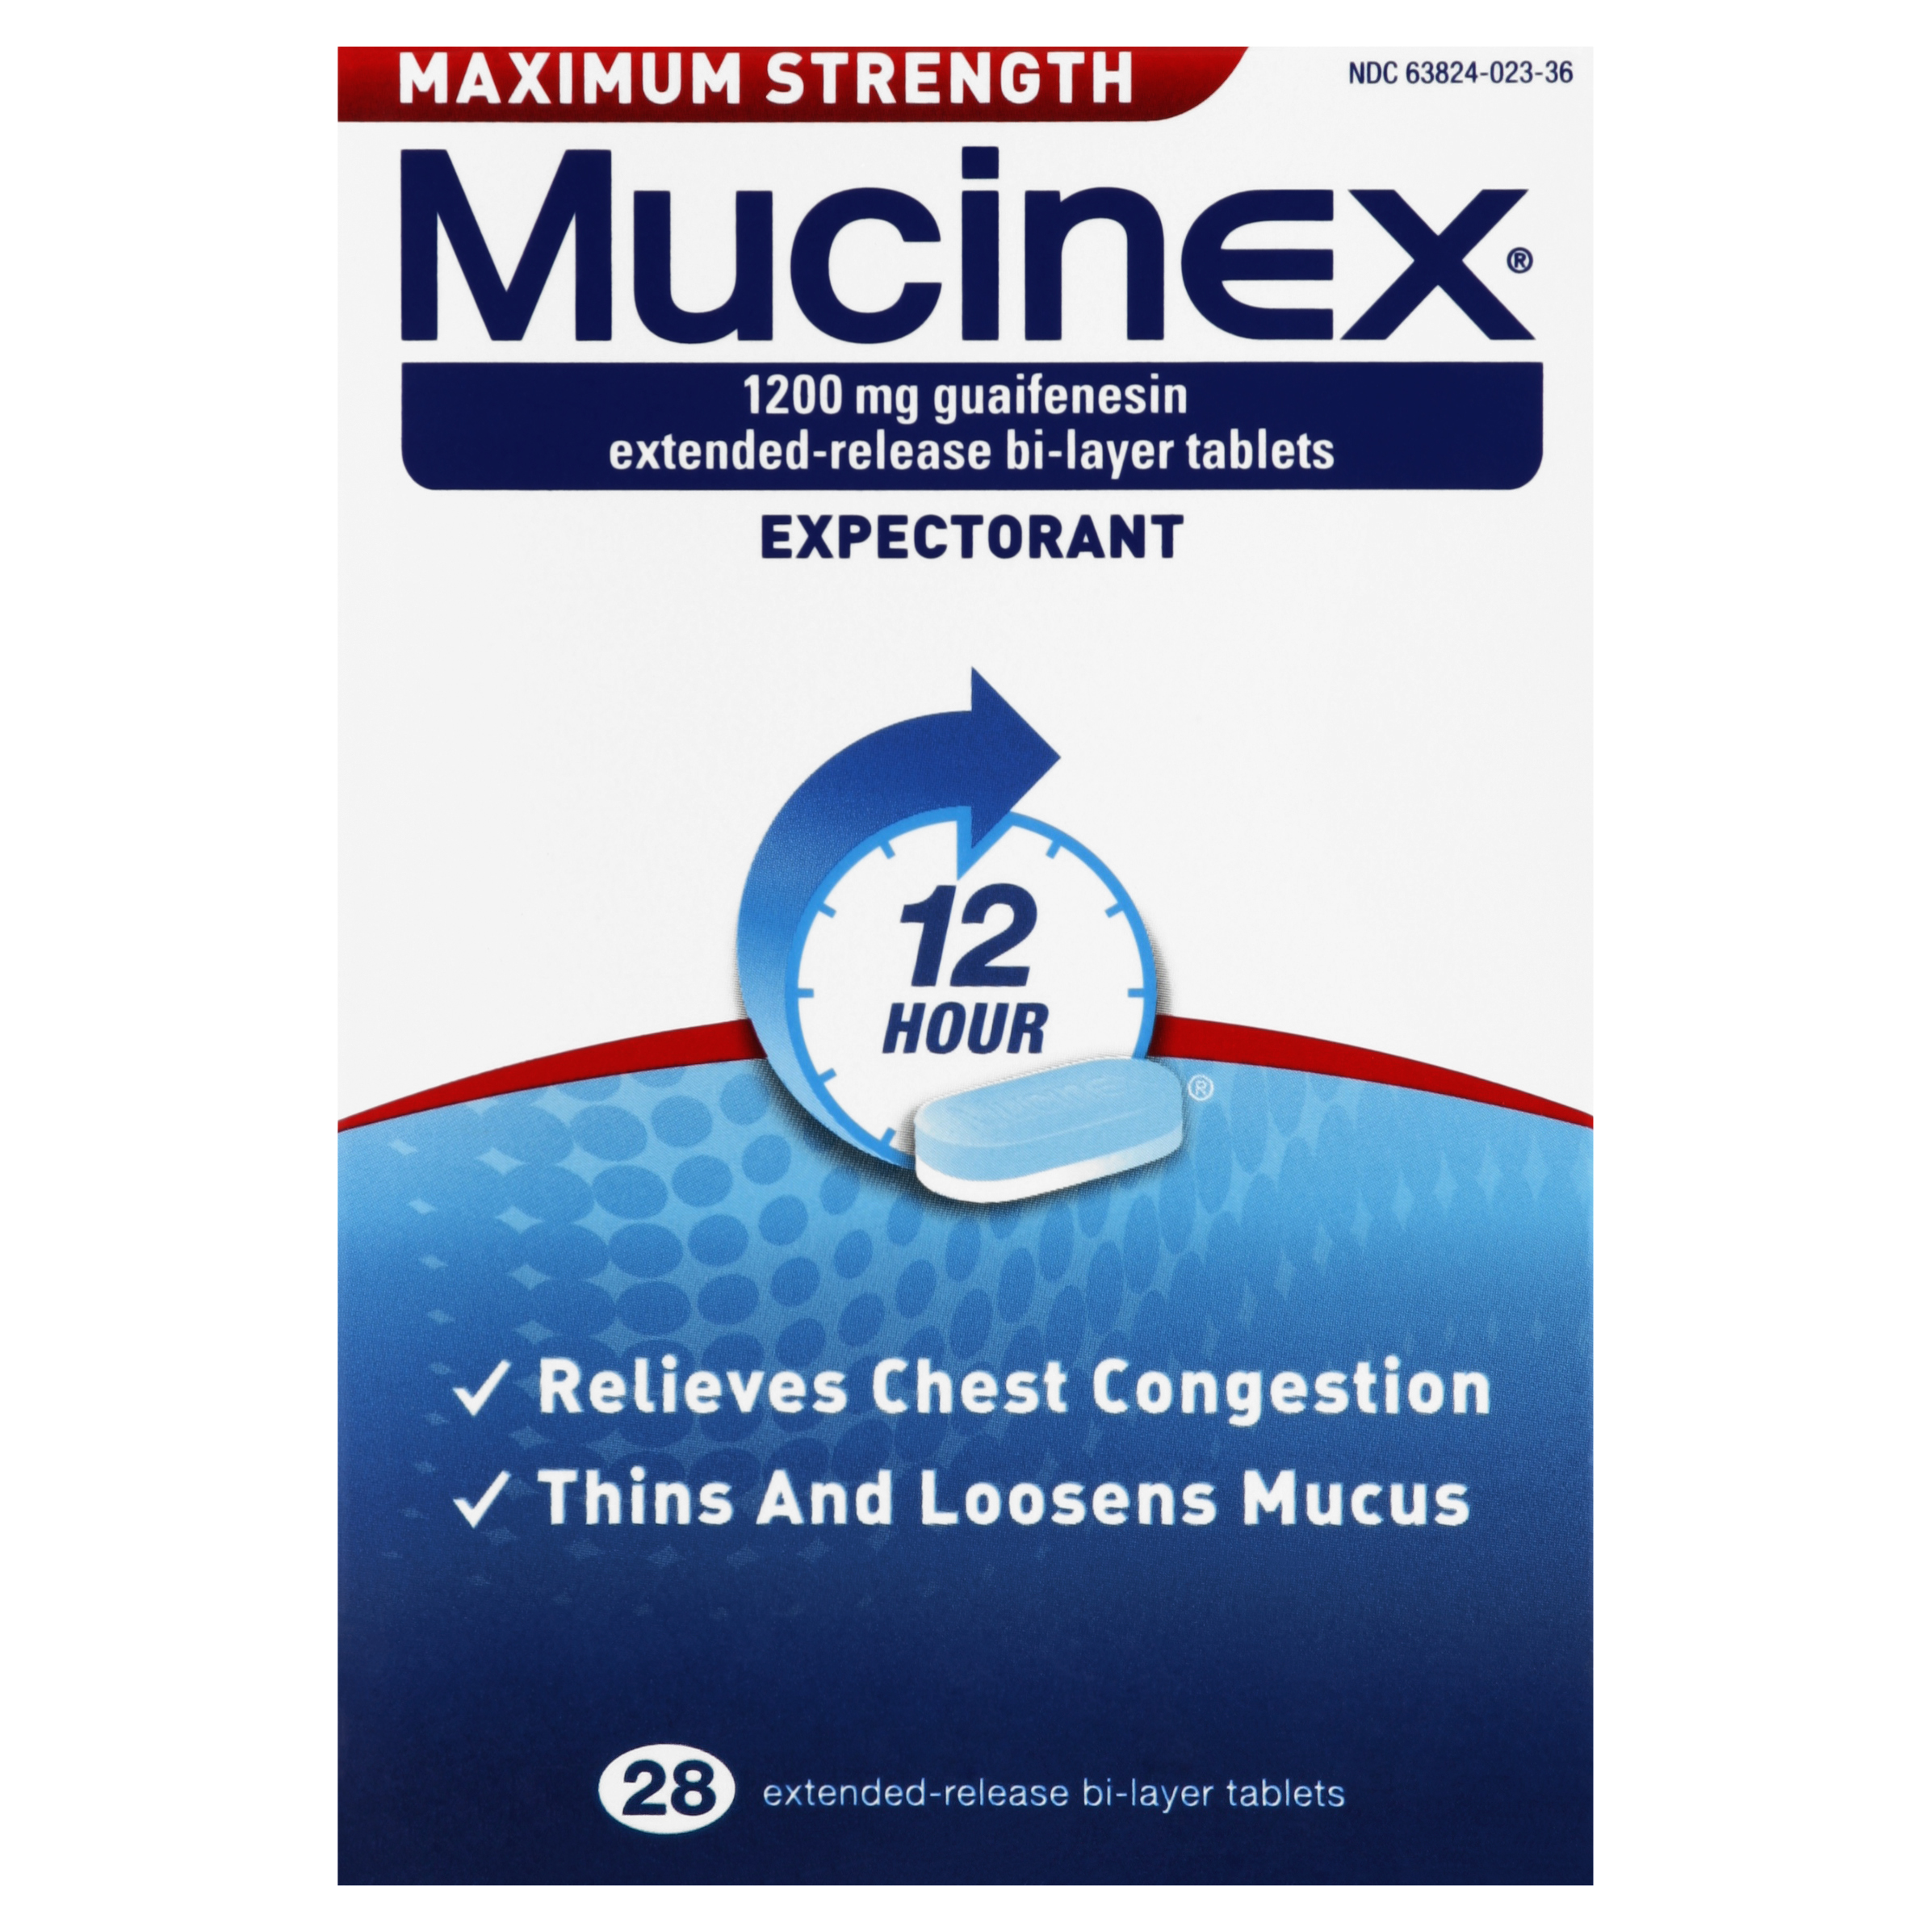 Mucinex Maximum Strength 12-Hour Chest Congestion Expectorant Tablets, 28 Count